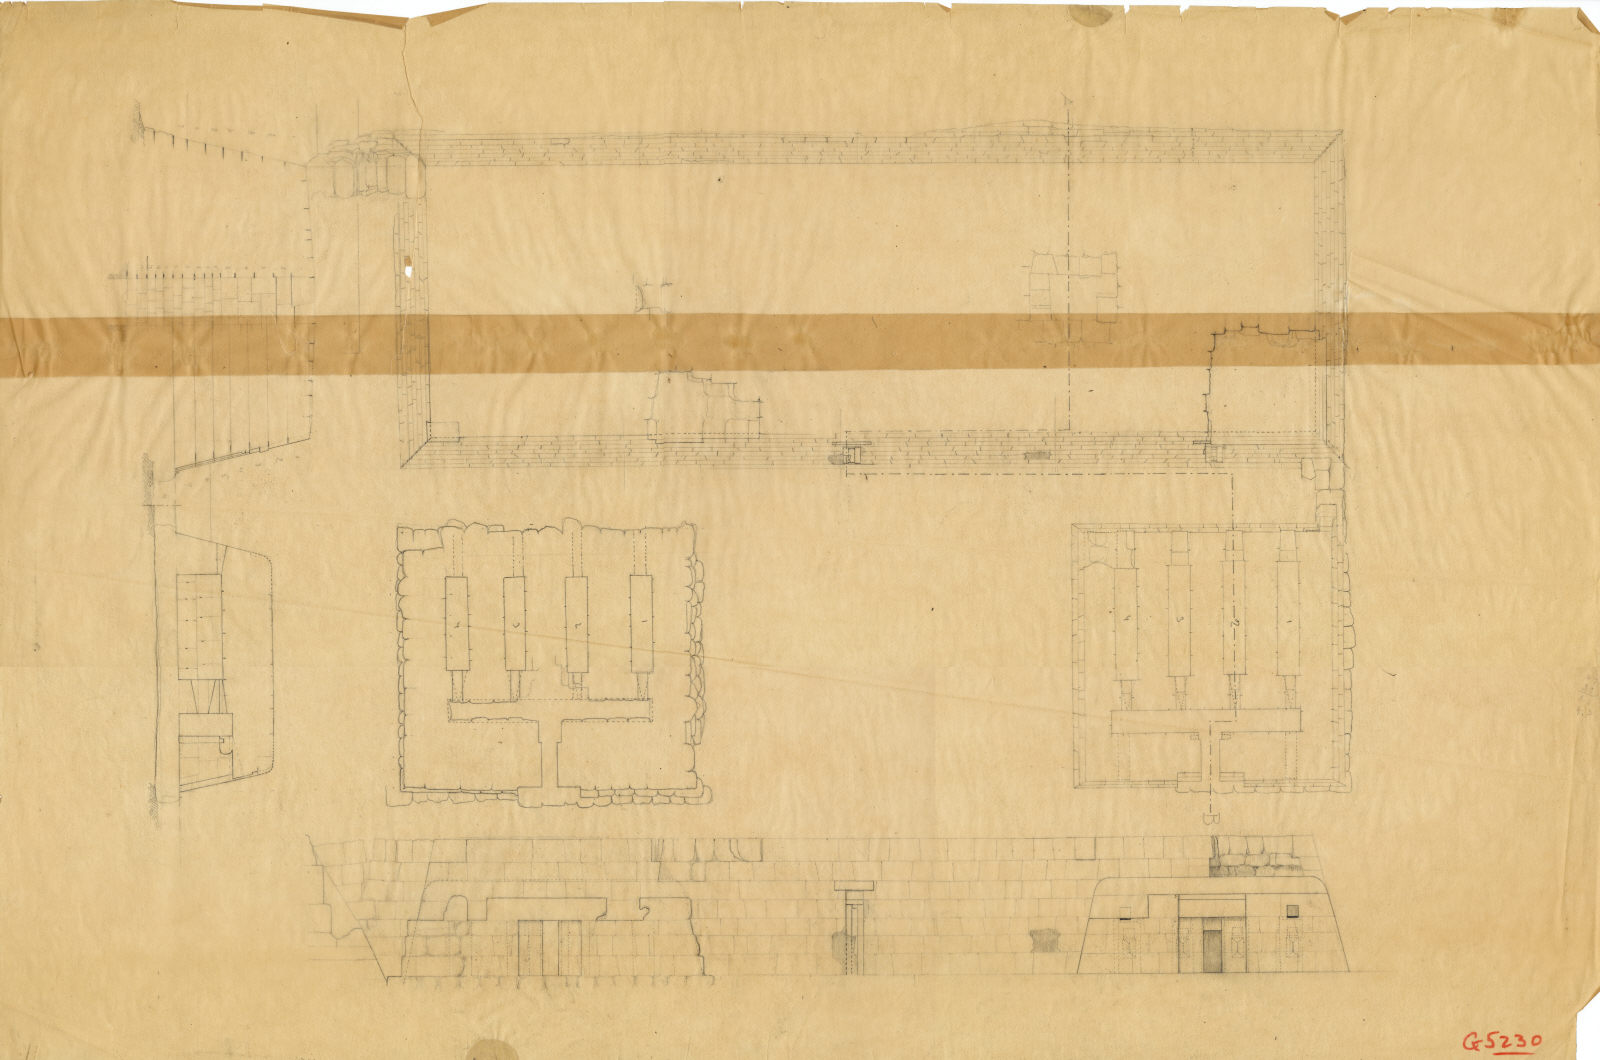 Maps and plans: G 5230, Plan and section